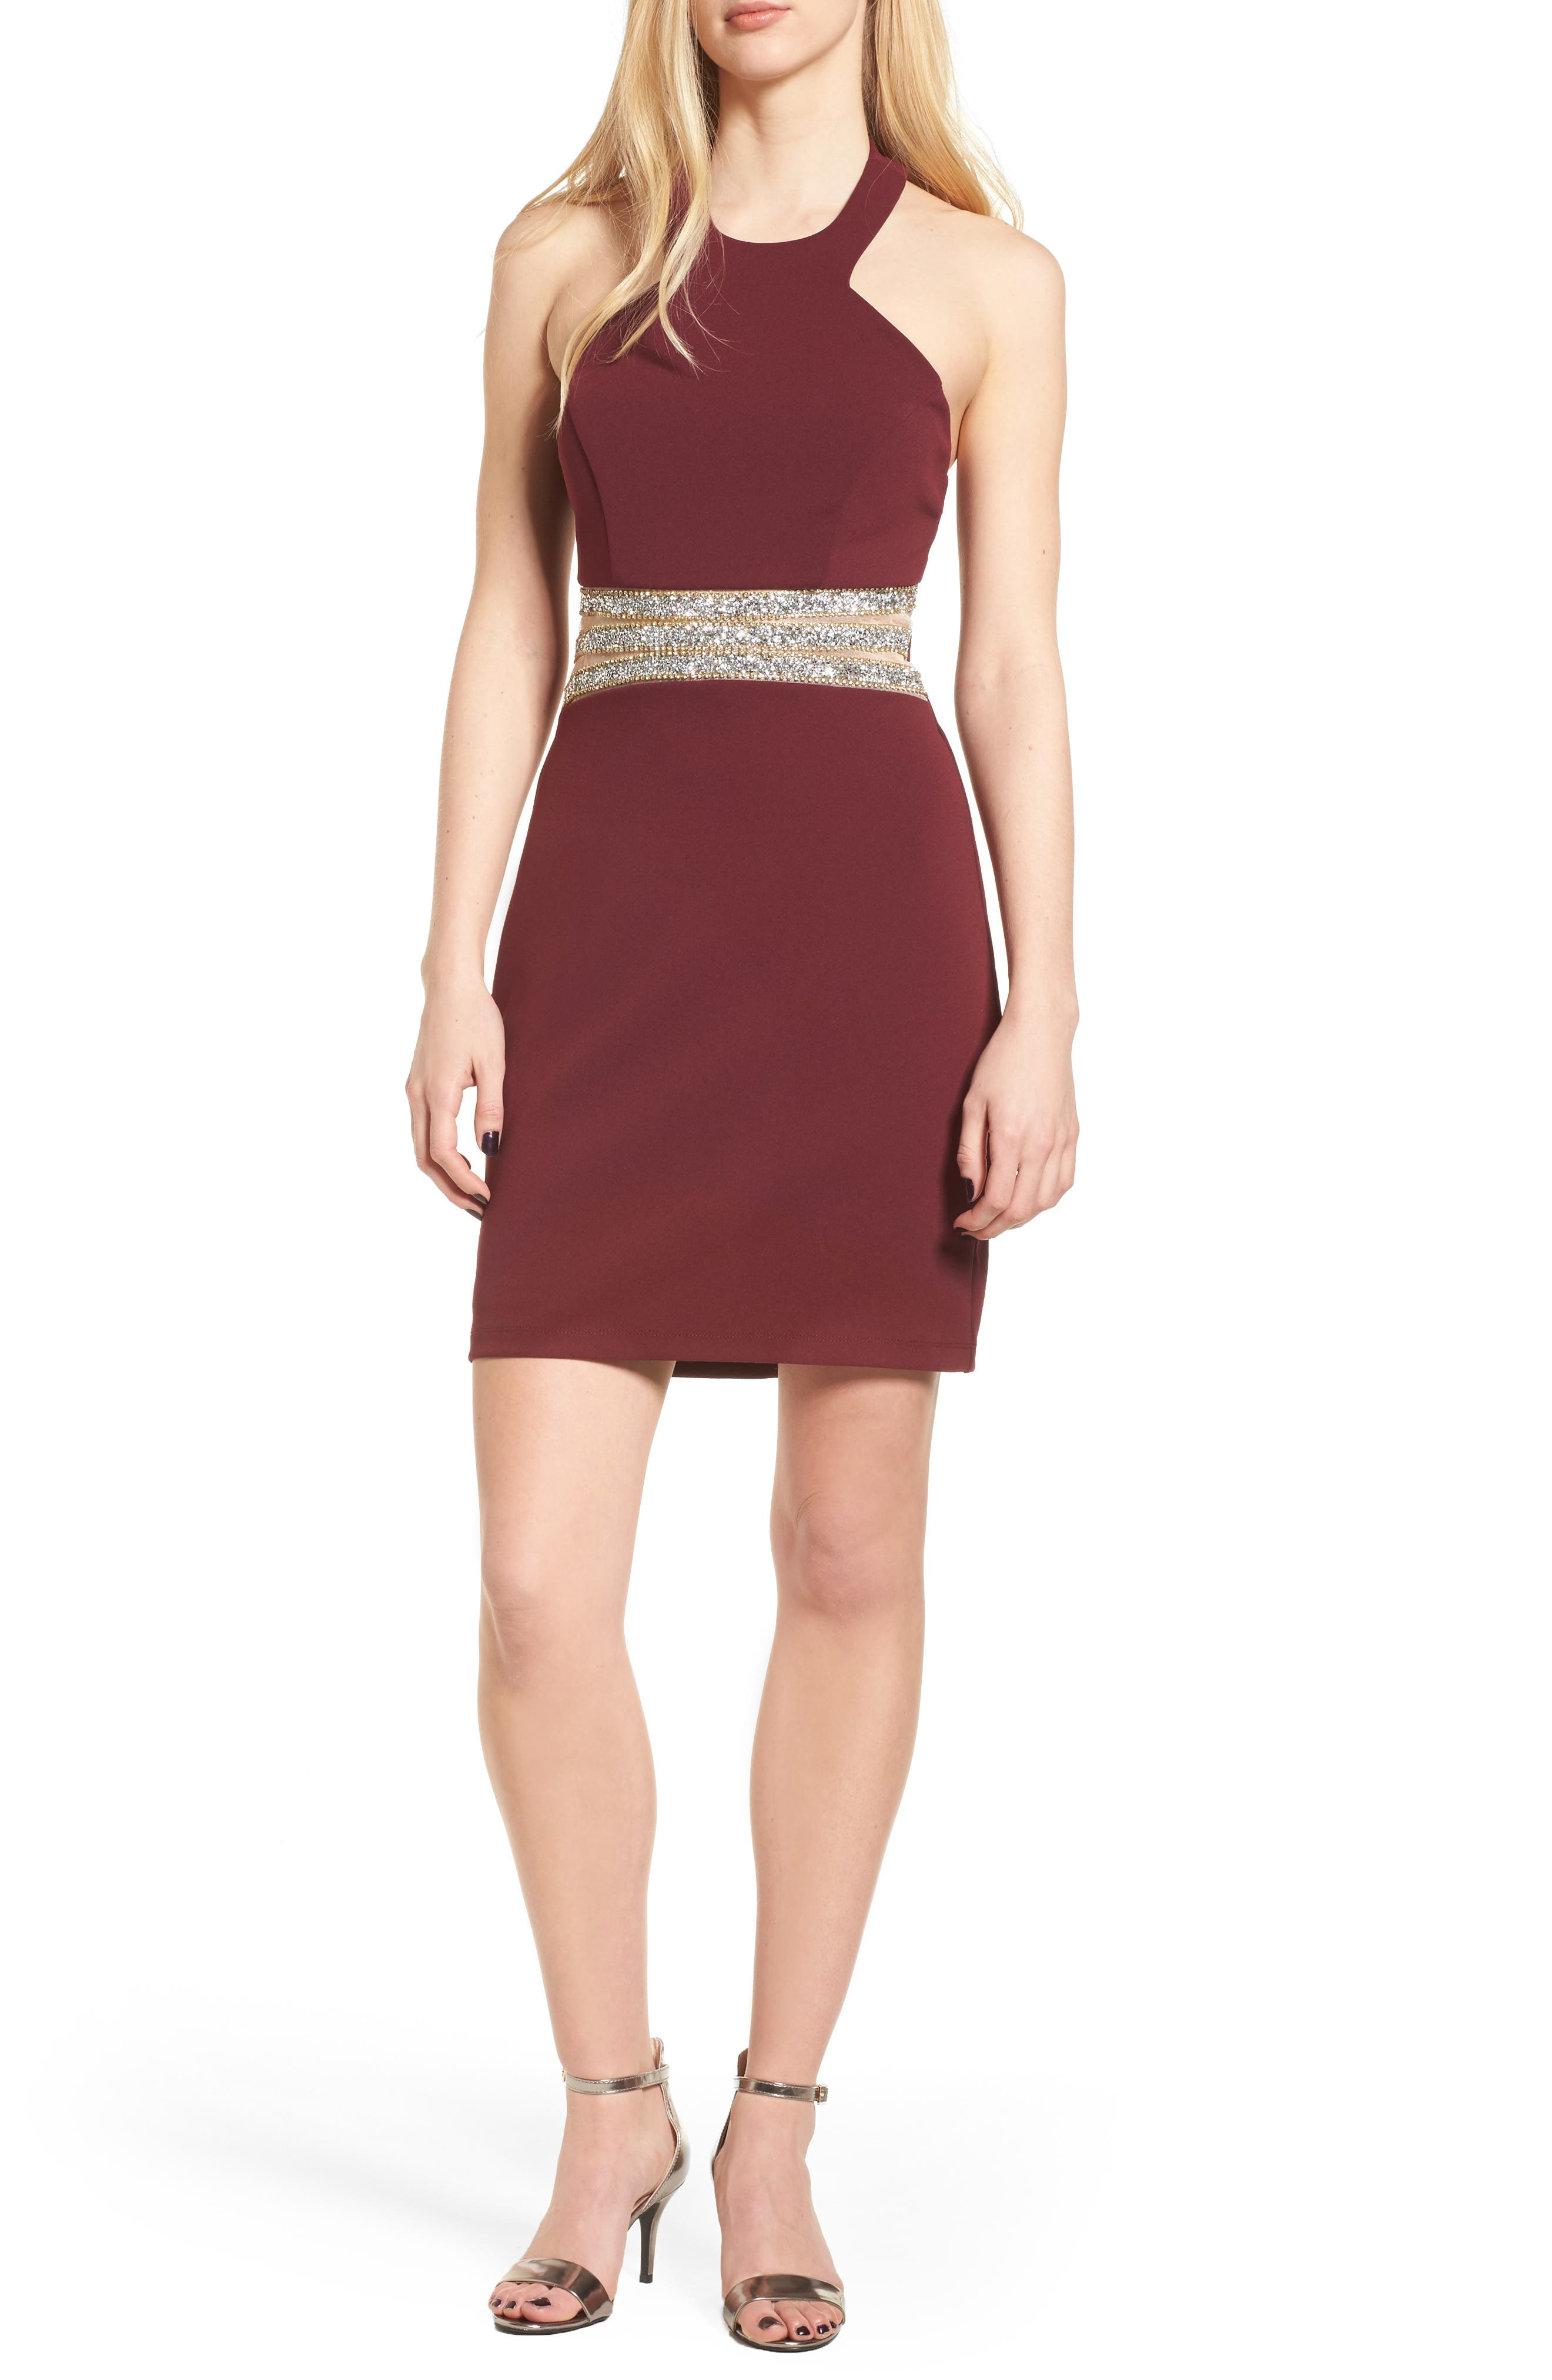 Main Image - Speechless Embellished Halter Body-Con Dress